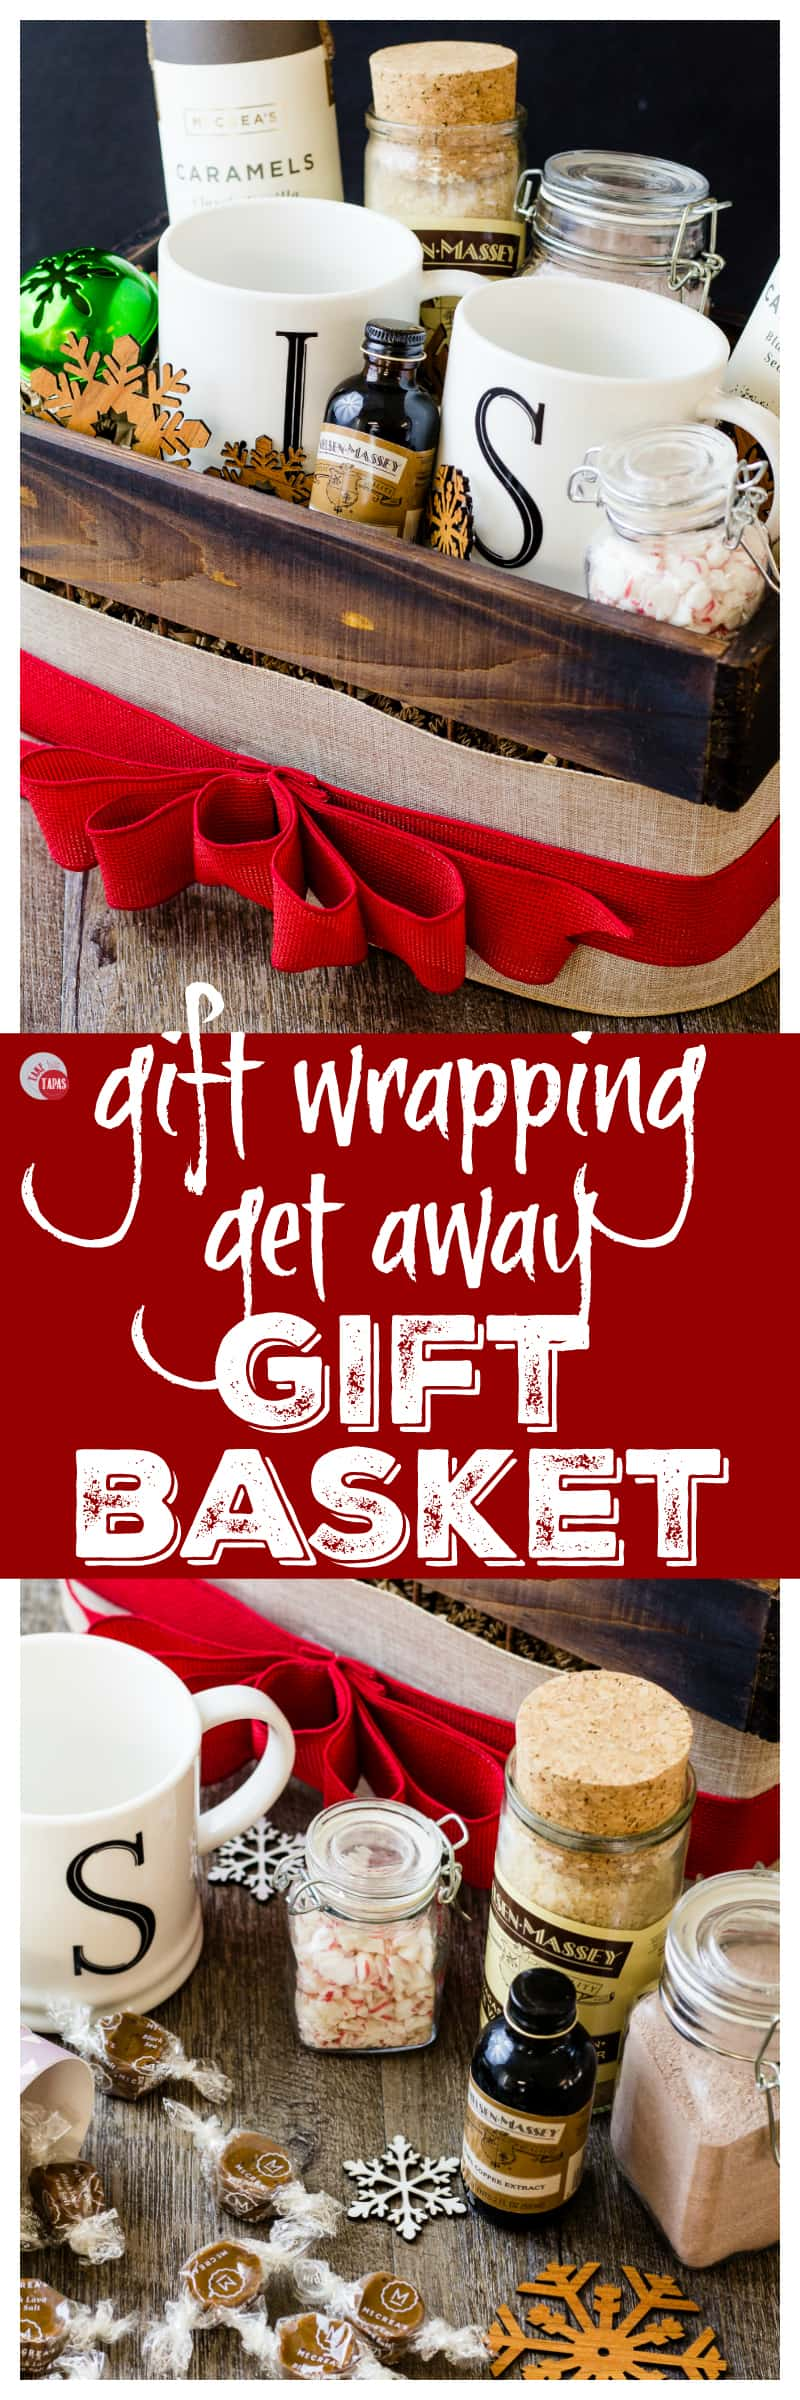 Gift Wrapping Get Away Gift Basket | Take Two Tapas | #GiftWrapping #Mocha #GetAway #GiftBasket #Holidays #AD